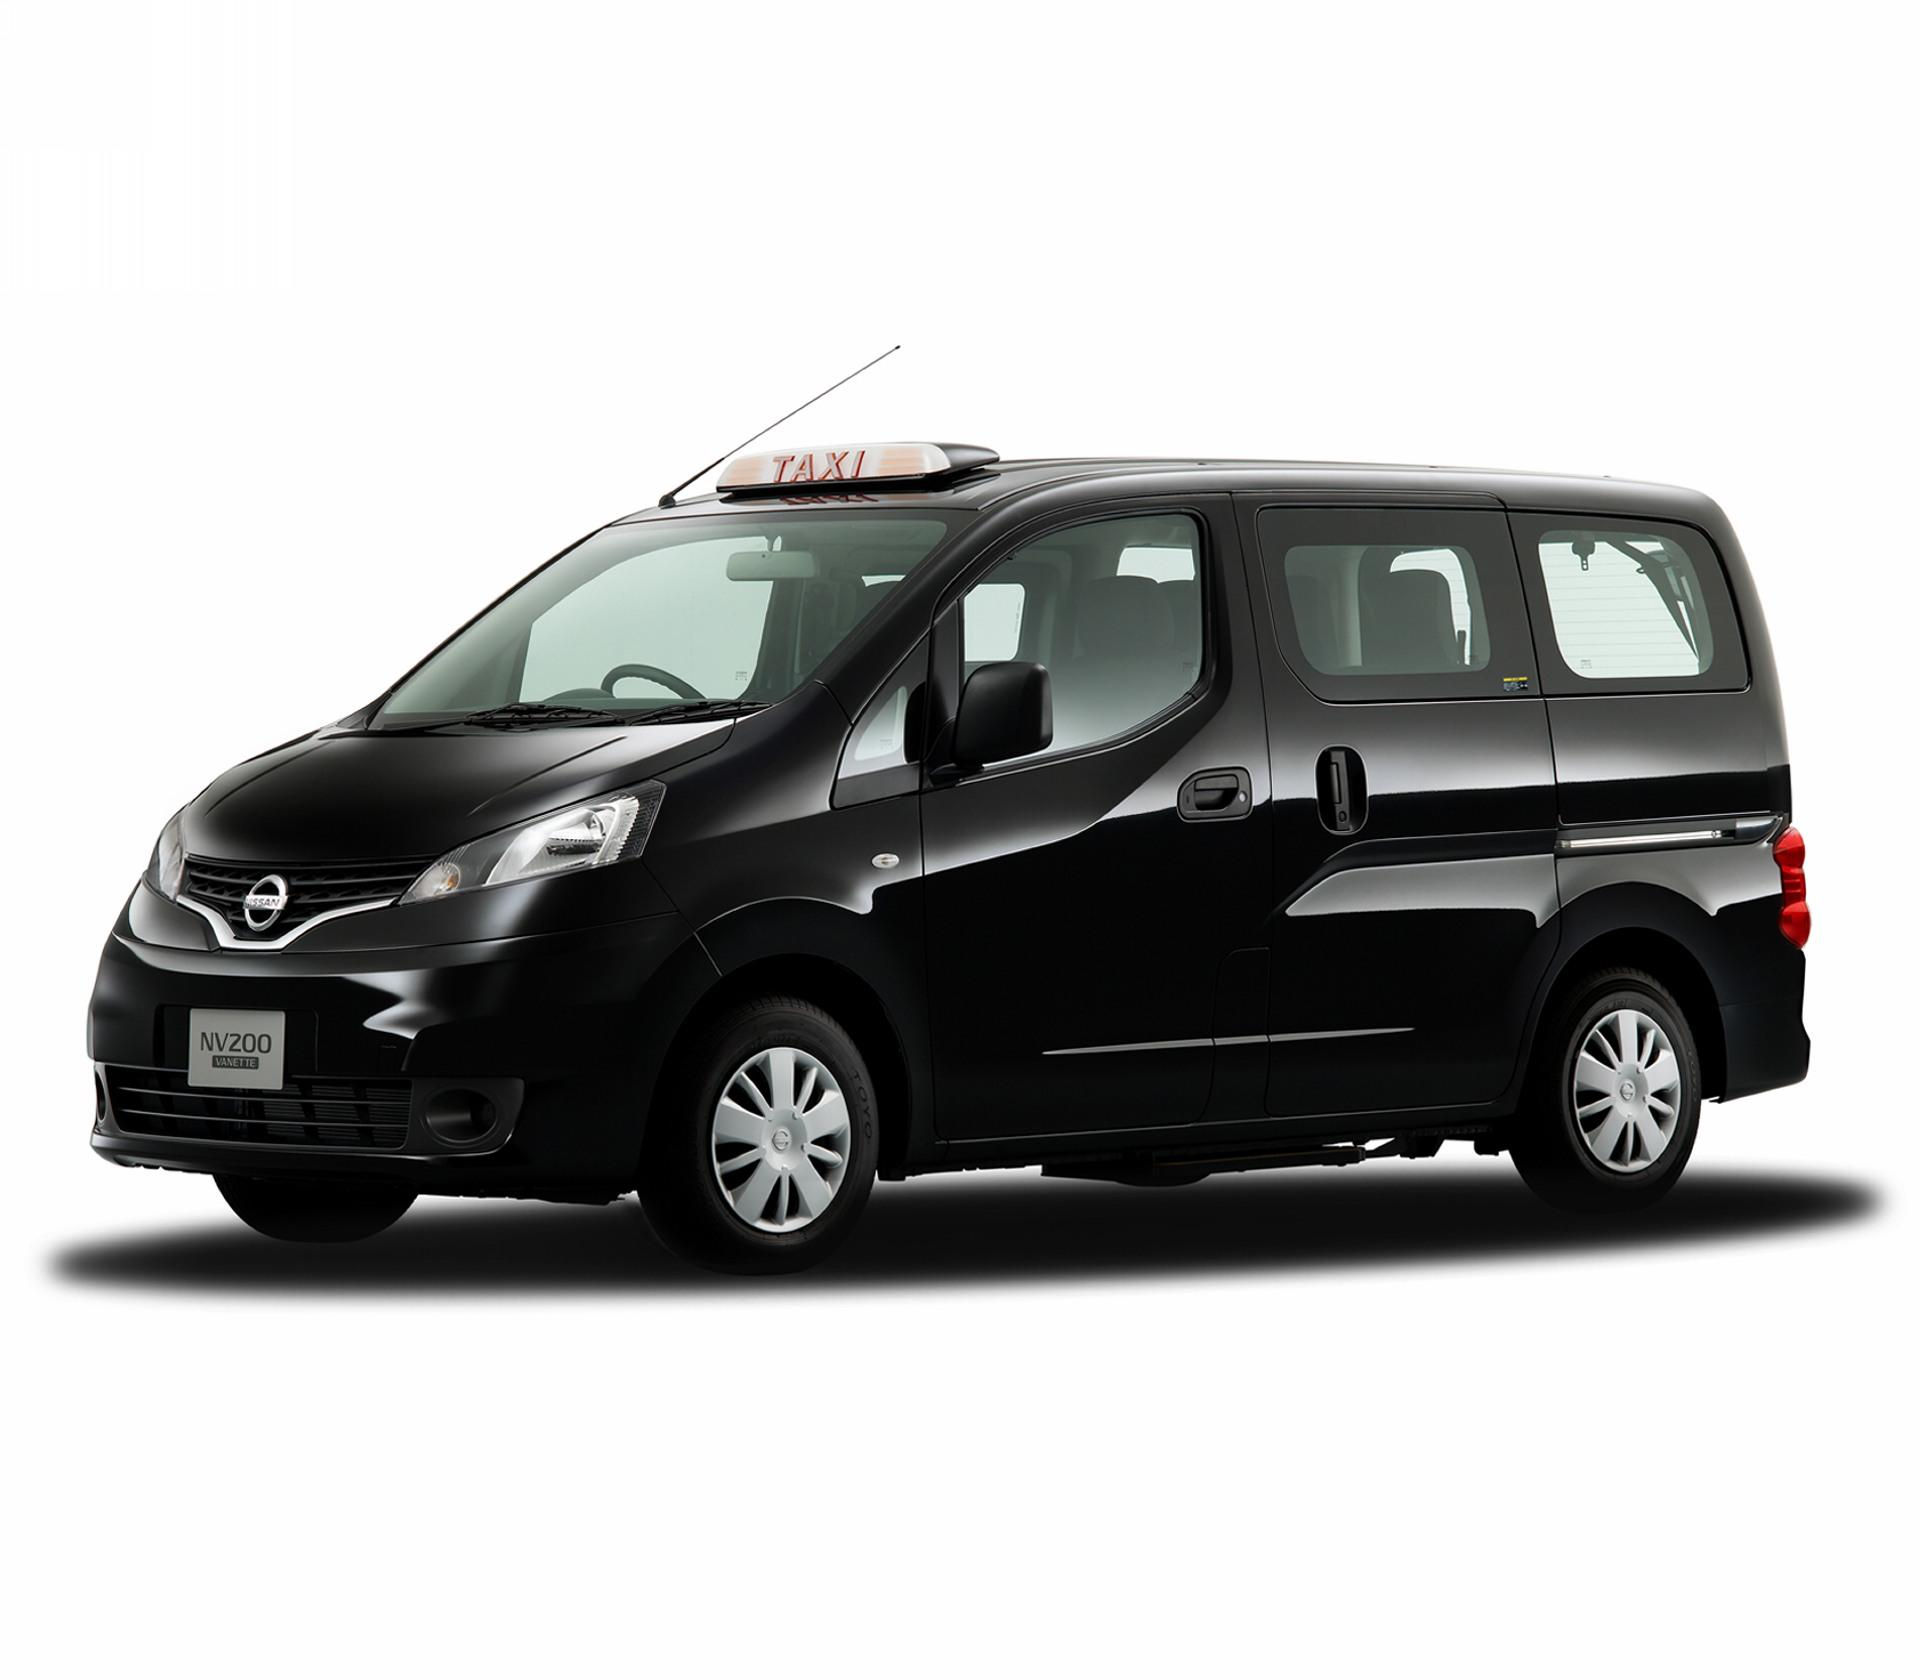 2011 nissan nv200 vanette taxi technical specifications and data engine dimensions and. Black Bedroom Furniture Sets. Home Design Ideas